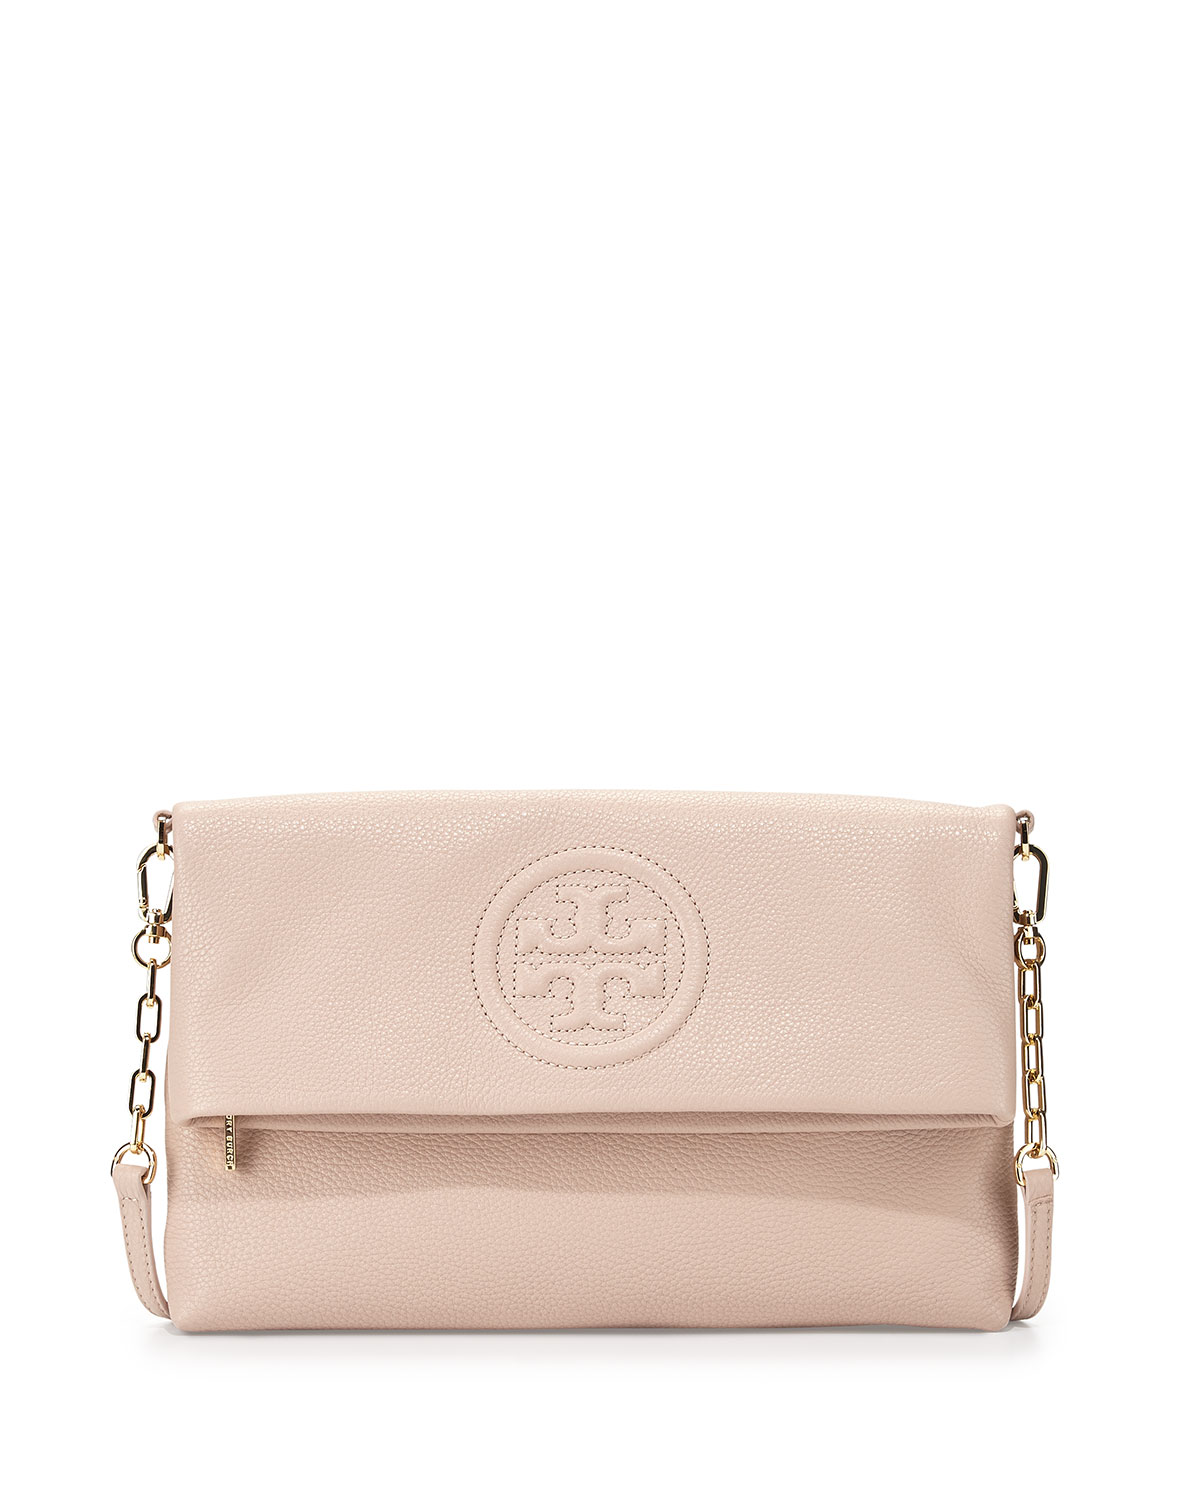 Bombe 94 se rapportant à tory burch bombe fold-over clutch bag, light oak | neiman marcus